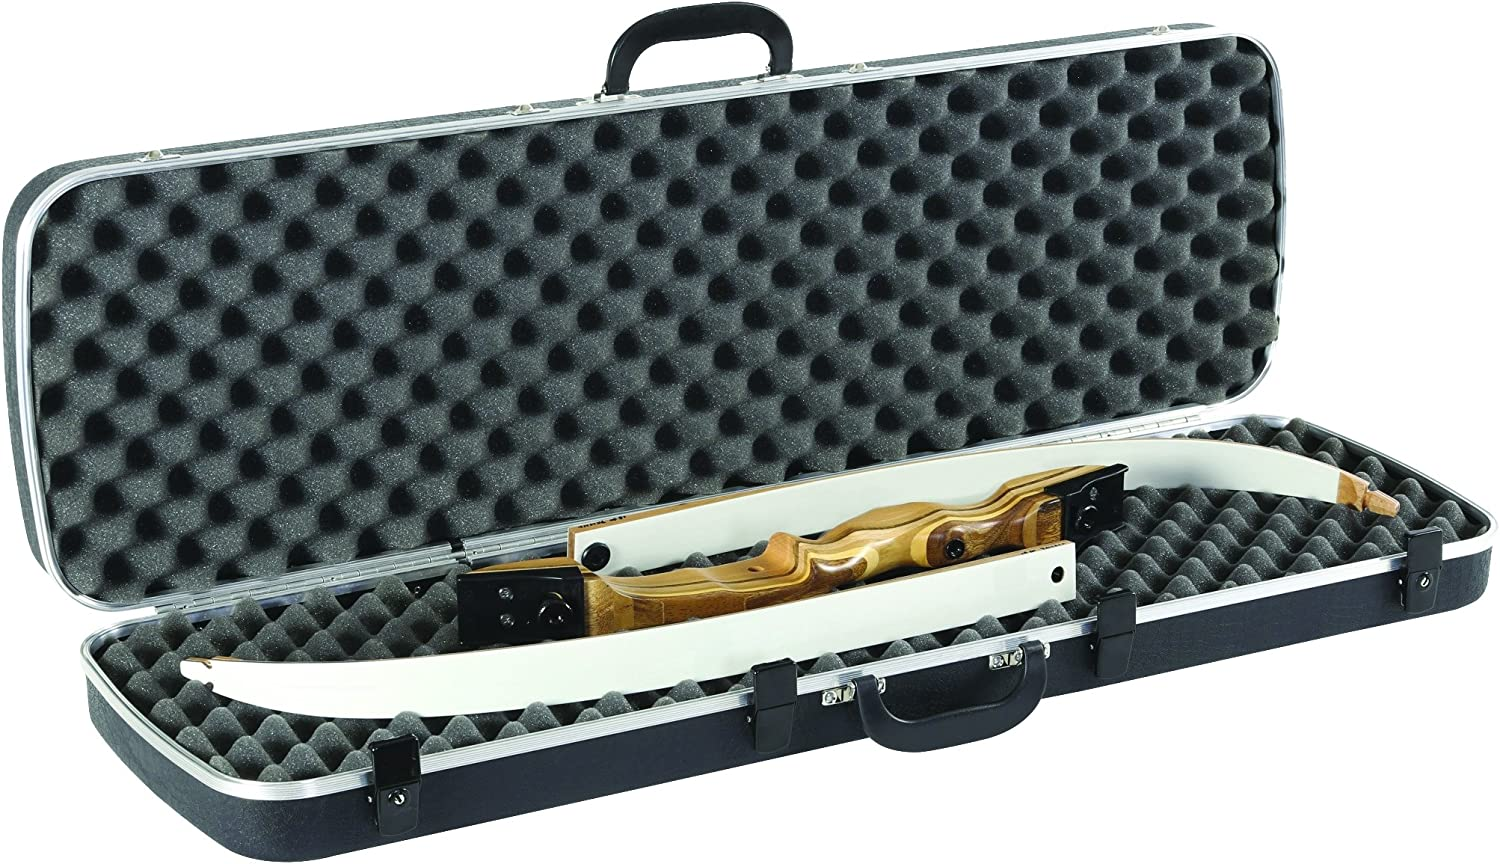 Plano Molding Plano Deluxe Bow Guard Recurve/Take Down Bow Case, Black by